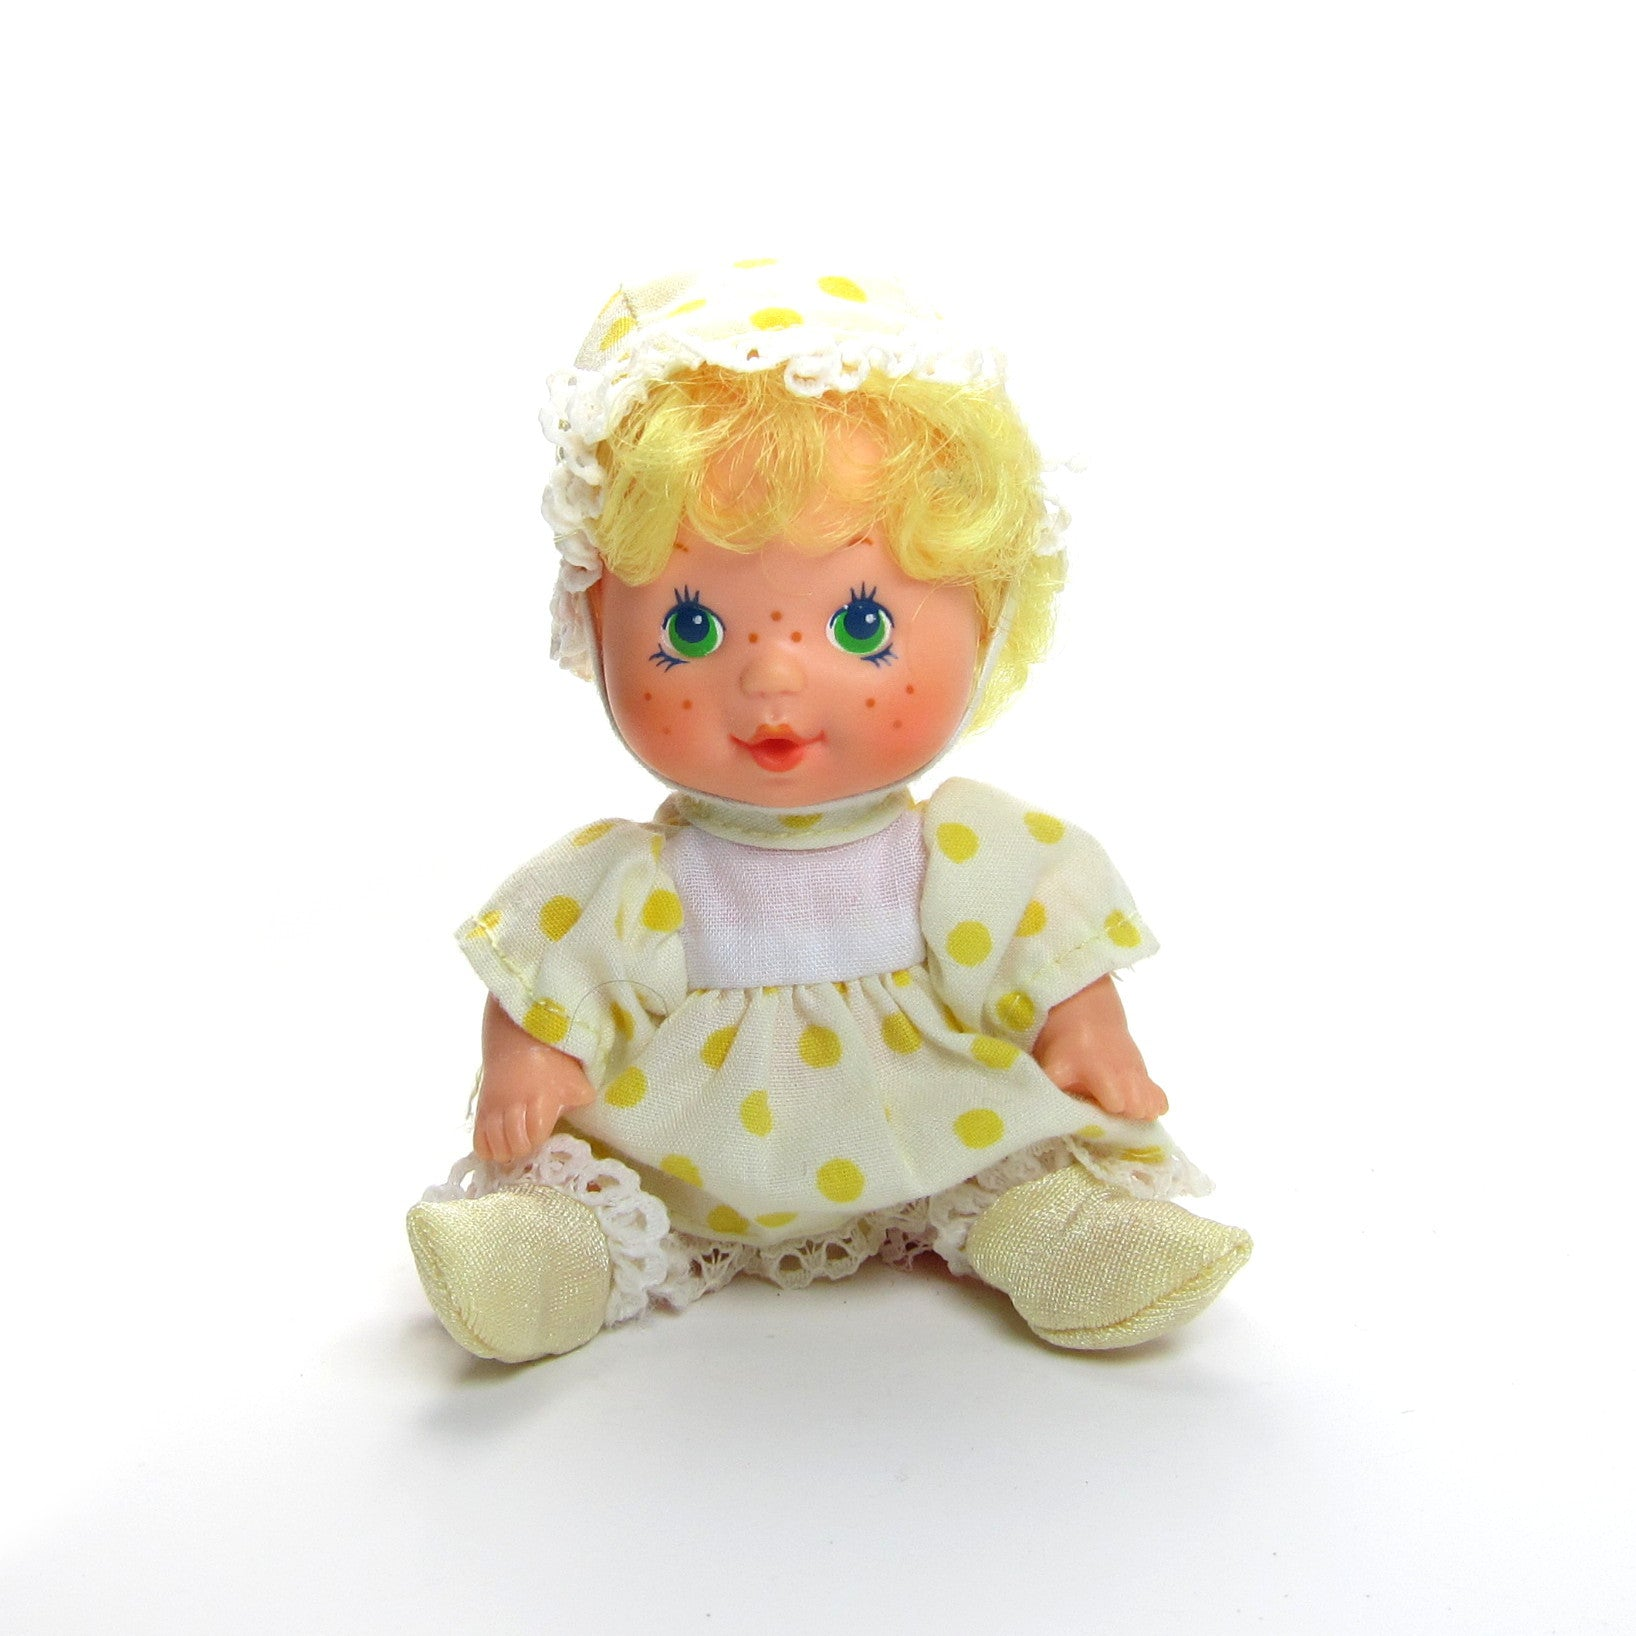 Lemon Meringue Berry Baby doll